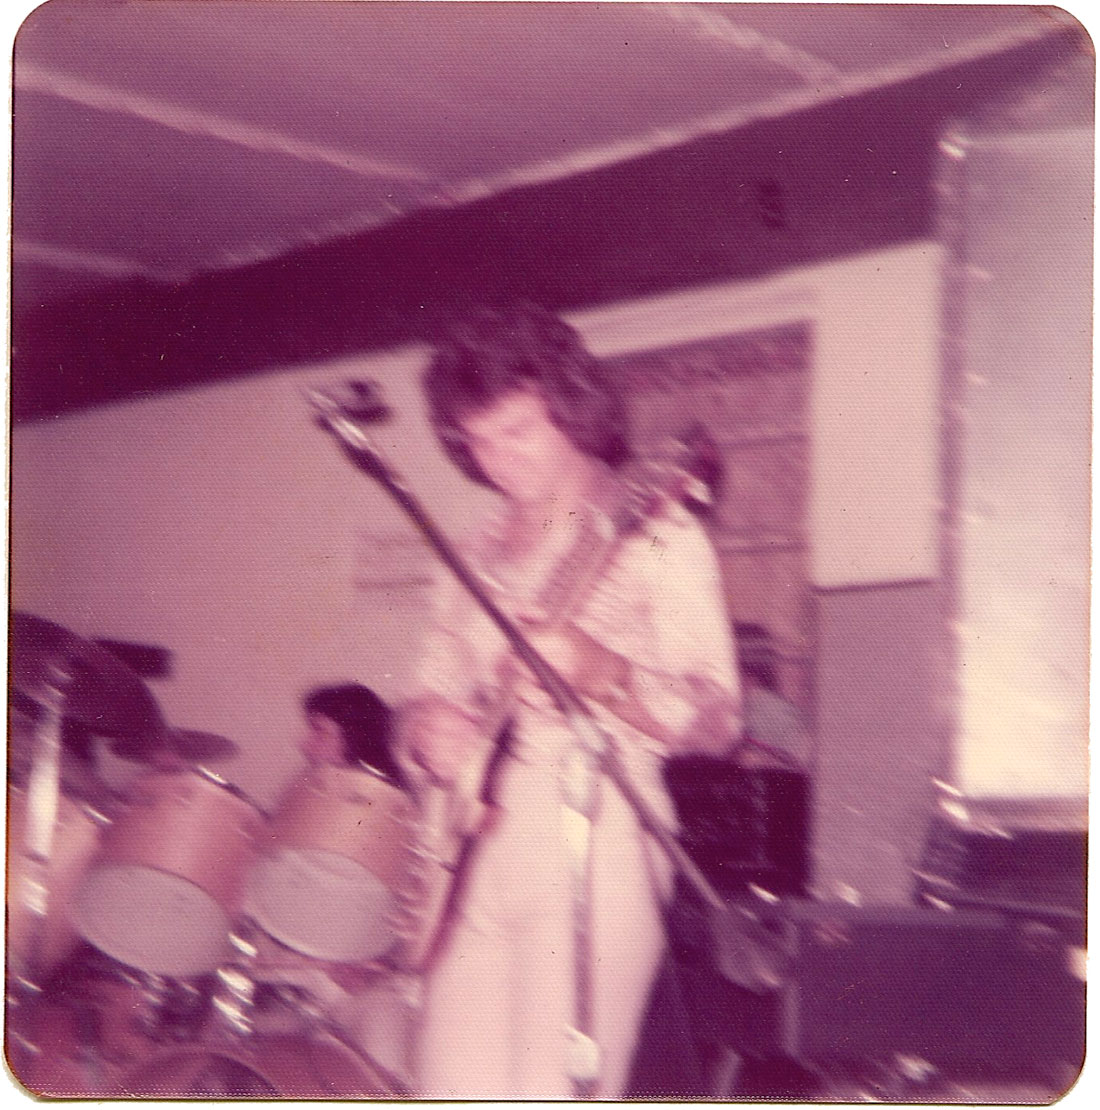 Frank Miret and Carlos Segura at The Big-5 Club on March 30, 1975